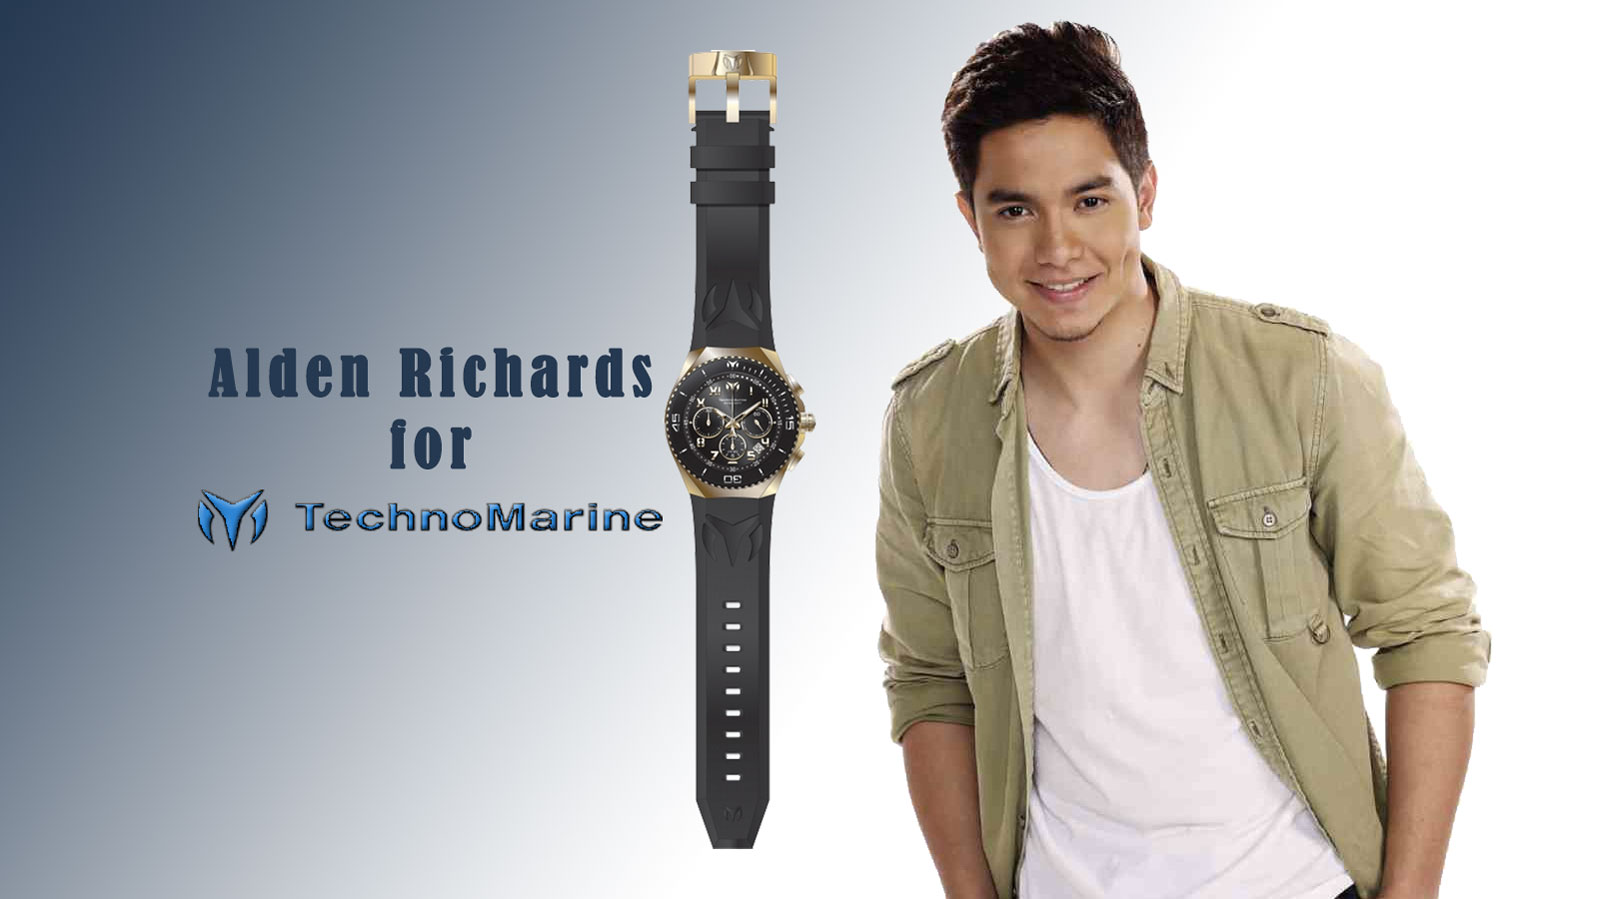 TechnoMarine renews partnership with Alden Richards